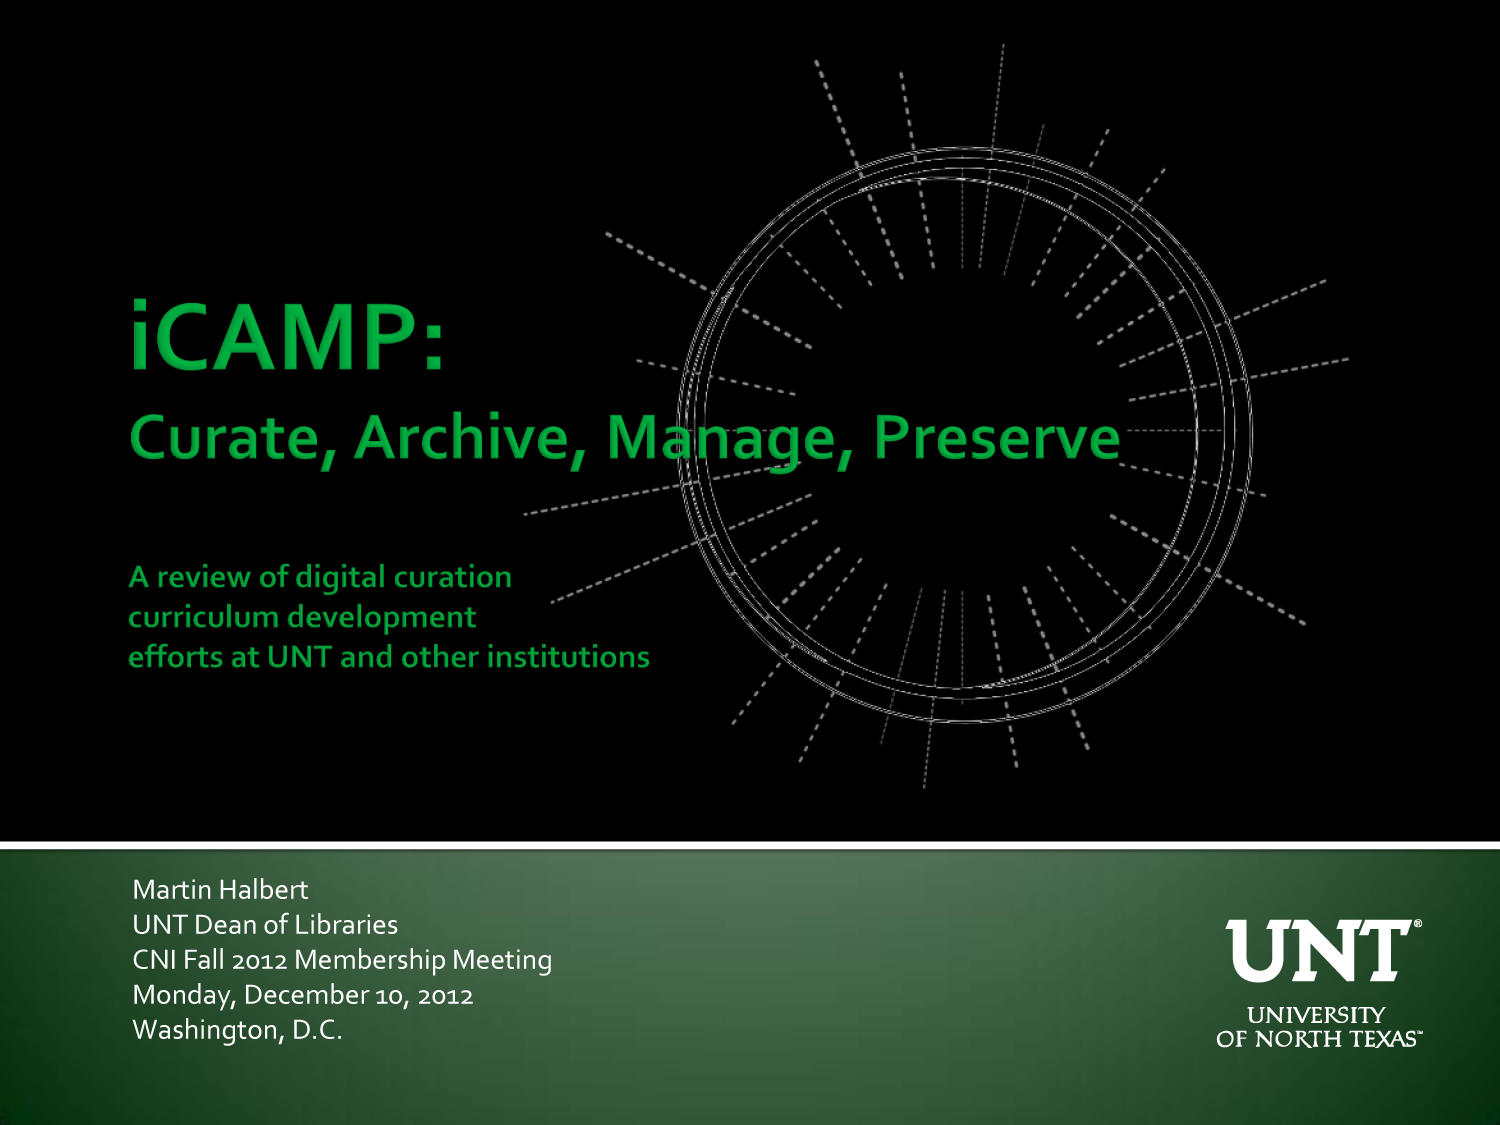 iCAMP: Curate, Archive, Manage, Preserve                                                                                                      [Sequence #]: 1 of 27